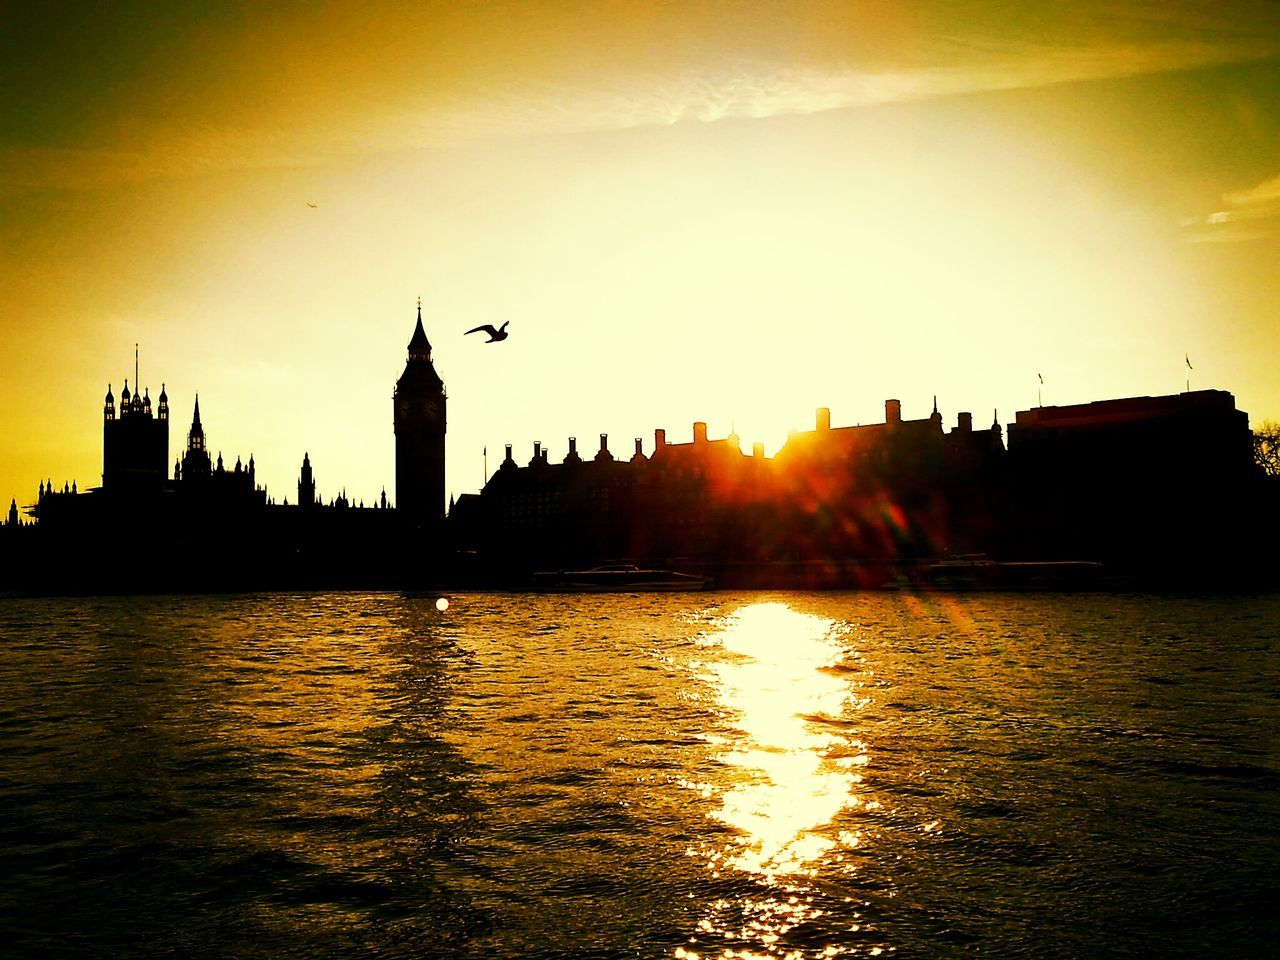 London Big Ben Parliament Building Thames Thames River Sunset Silhouettes Architecture Silhouette Building Exterior Outdoors River Water Built Structure No People Sunset Day Cityscape City Sky Bird Nature Politics And Government